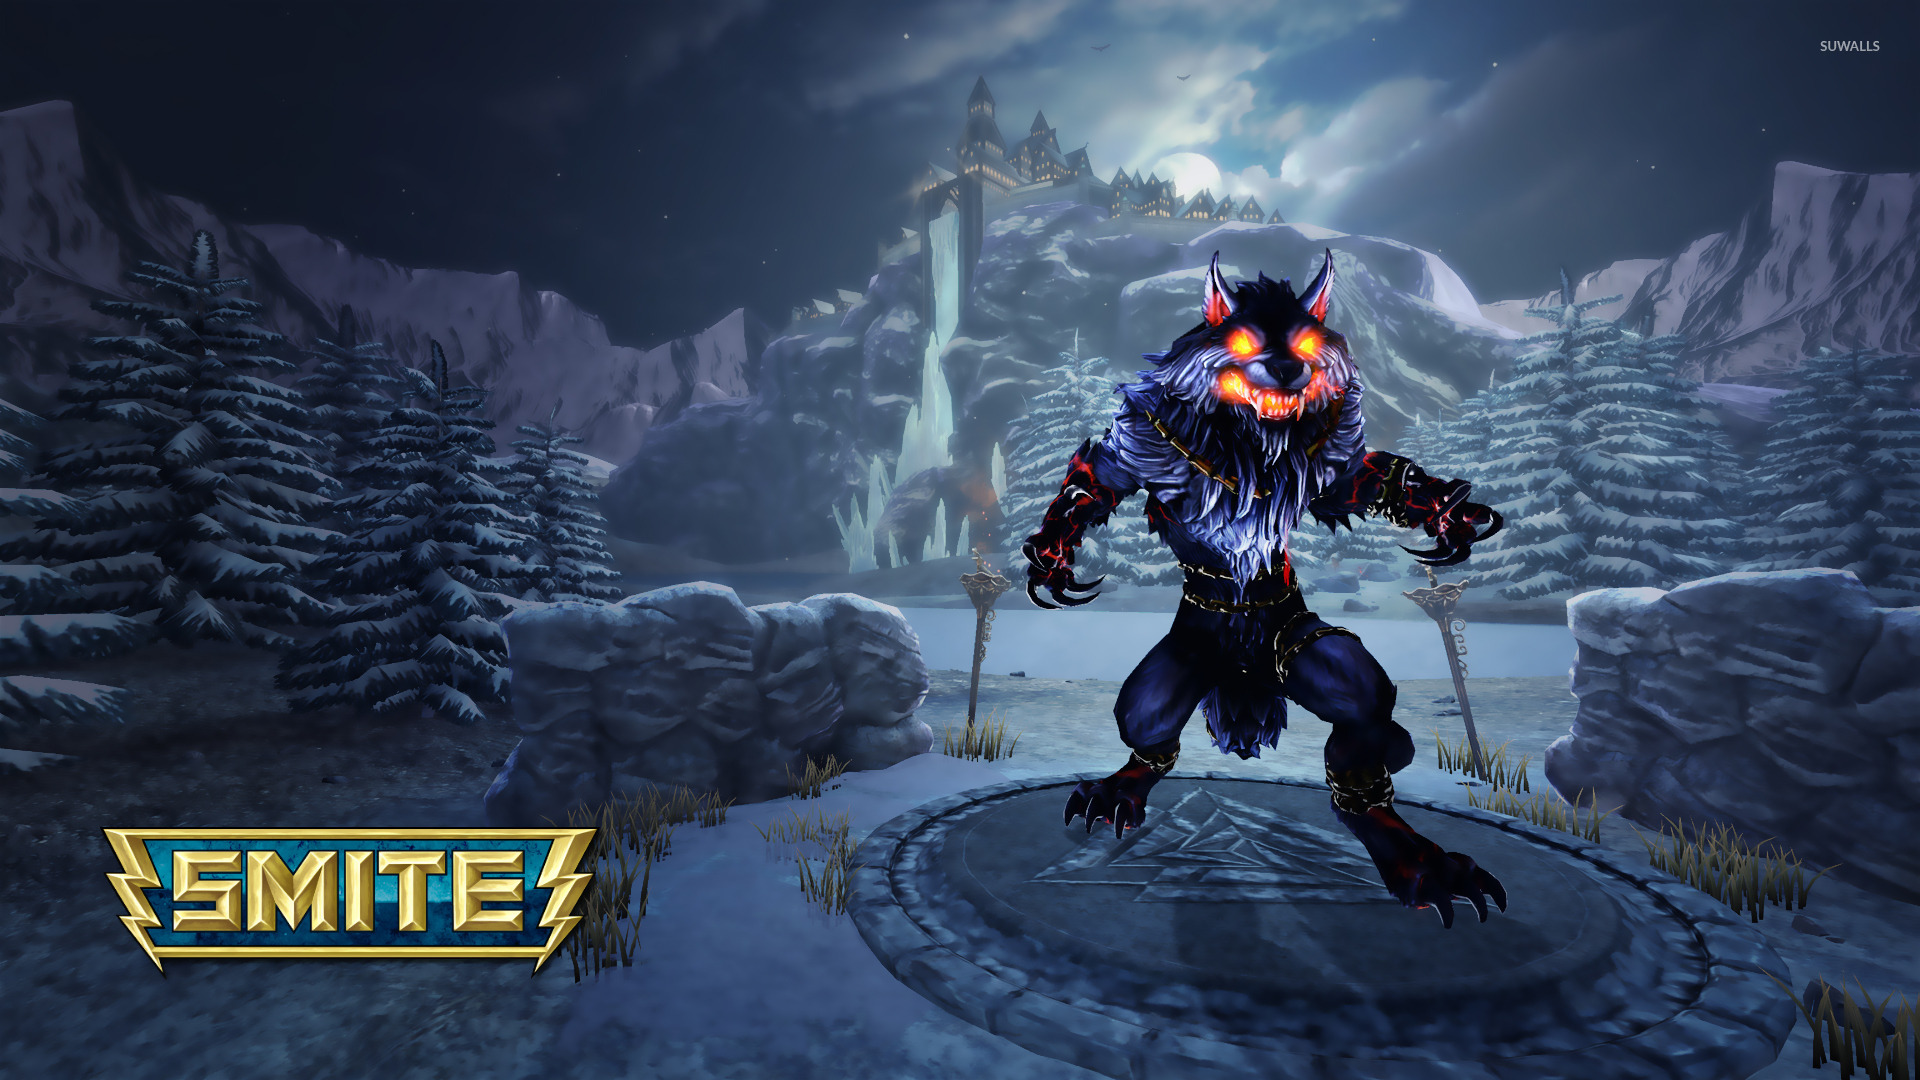 40k Quotes Wallpapers Fenrir Smite 2 Wallpaper Game Wallpapers 22381